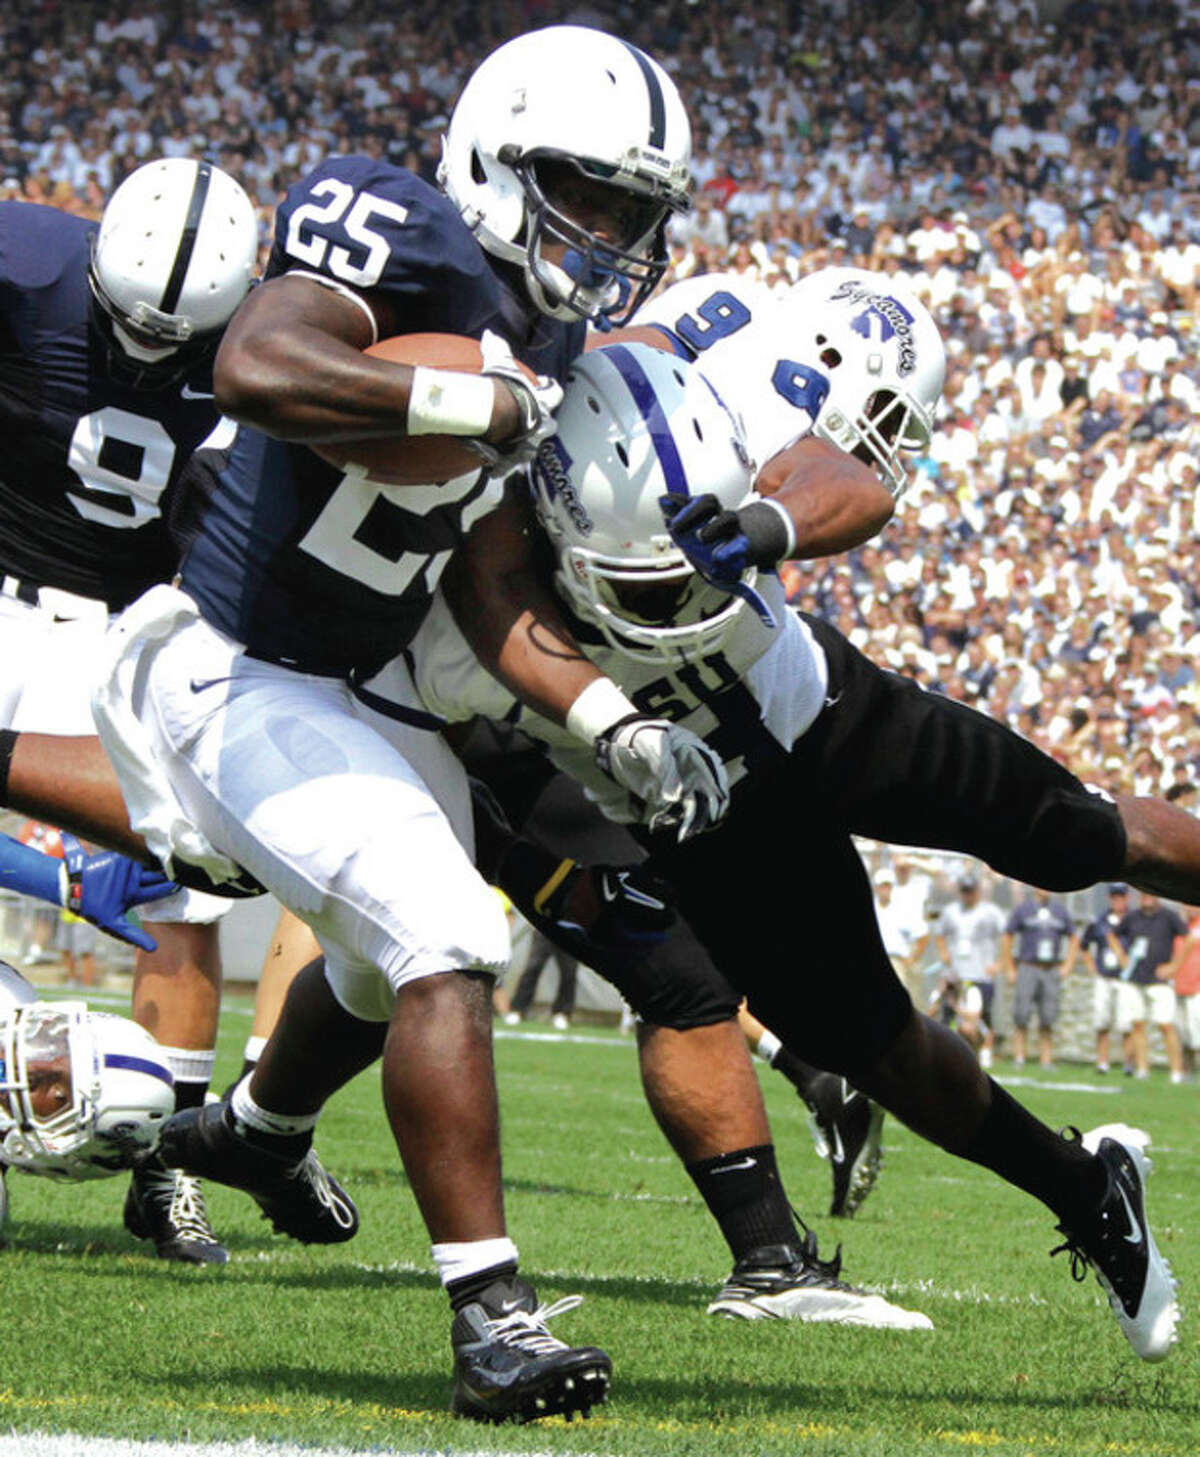 AP photo Penn State running back Silas Redd gets into the end zone for a touchdown past Indiana State defender Julian Easterly (6) during the first quarter of Saturday's game. A Norwalk resident, Redd ran for 104 yards and two TDs in Penn State's 41-7 win.